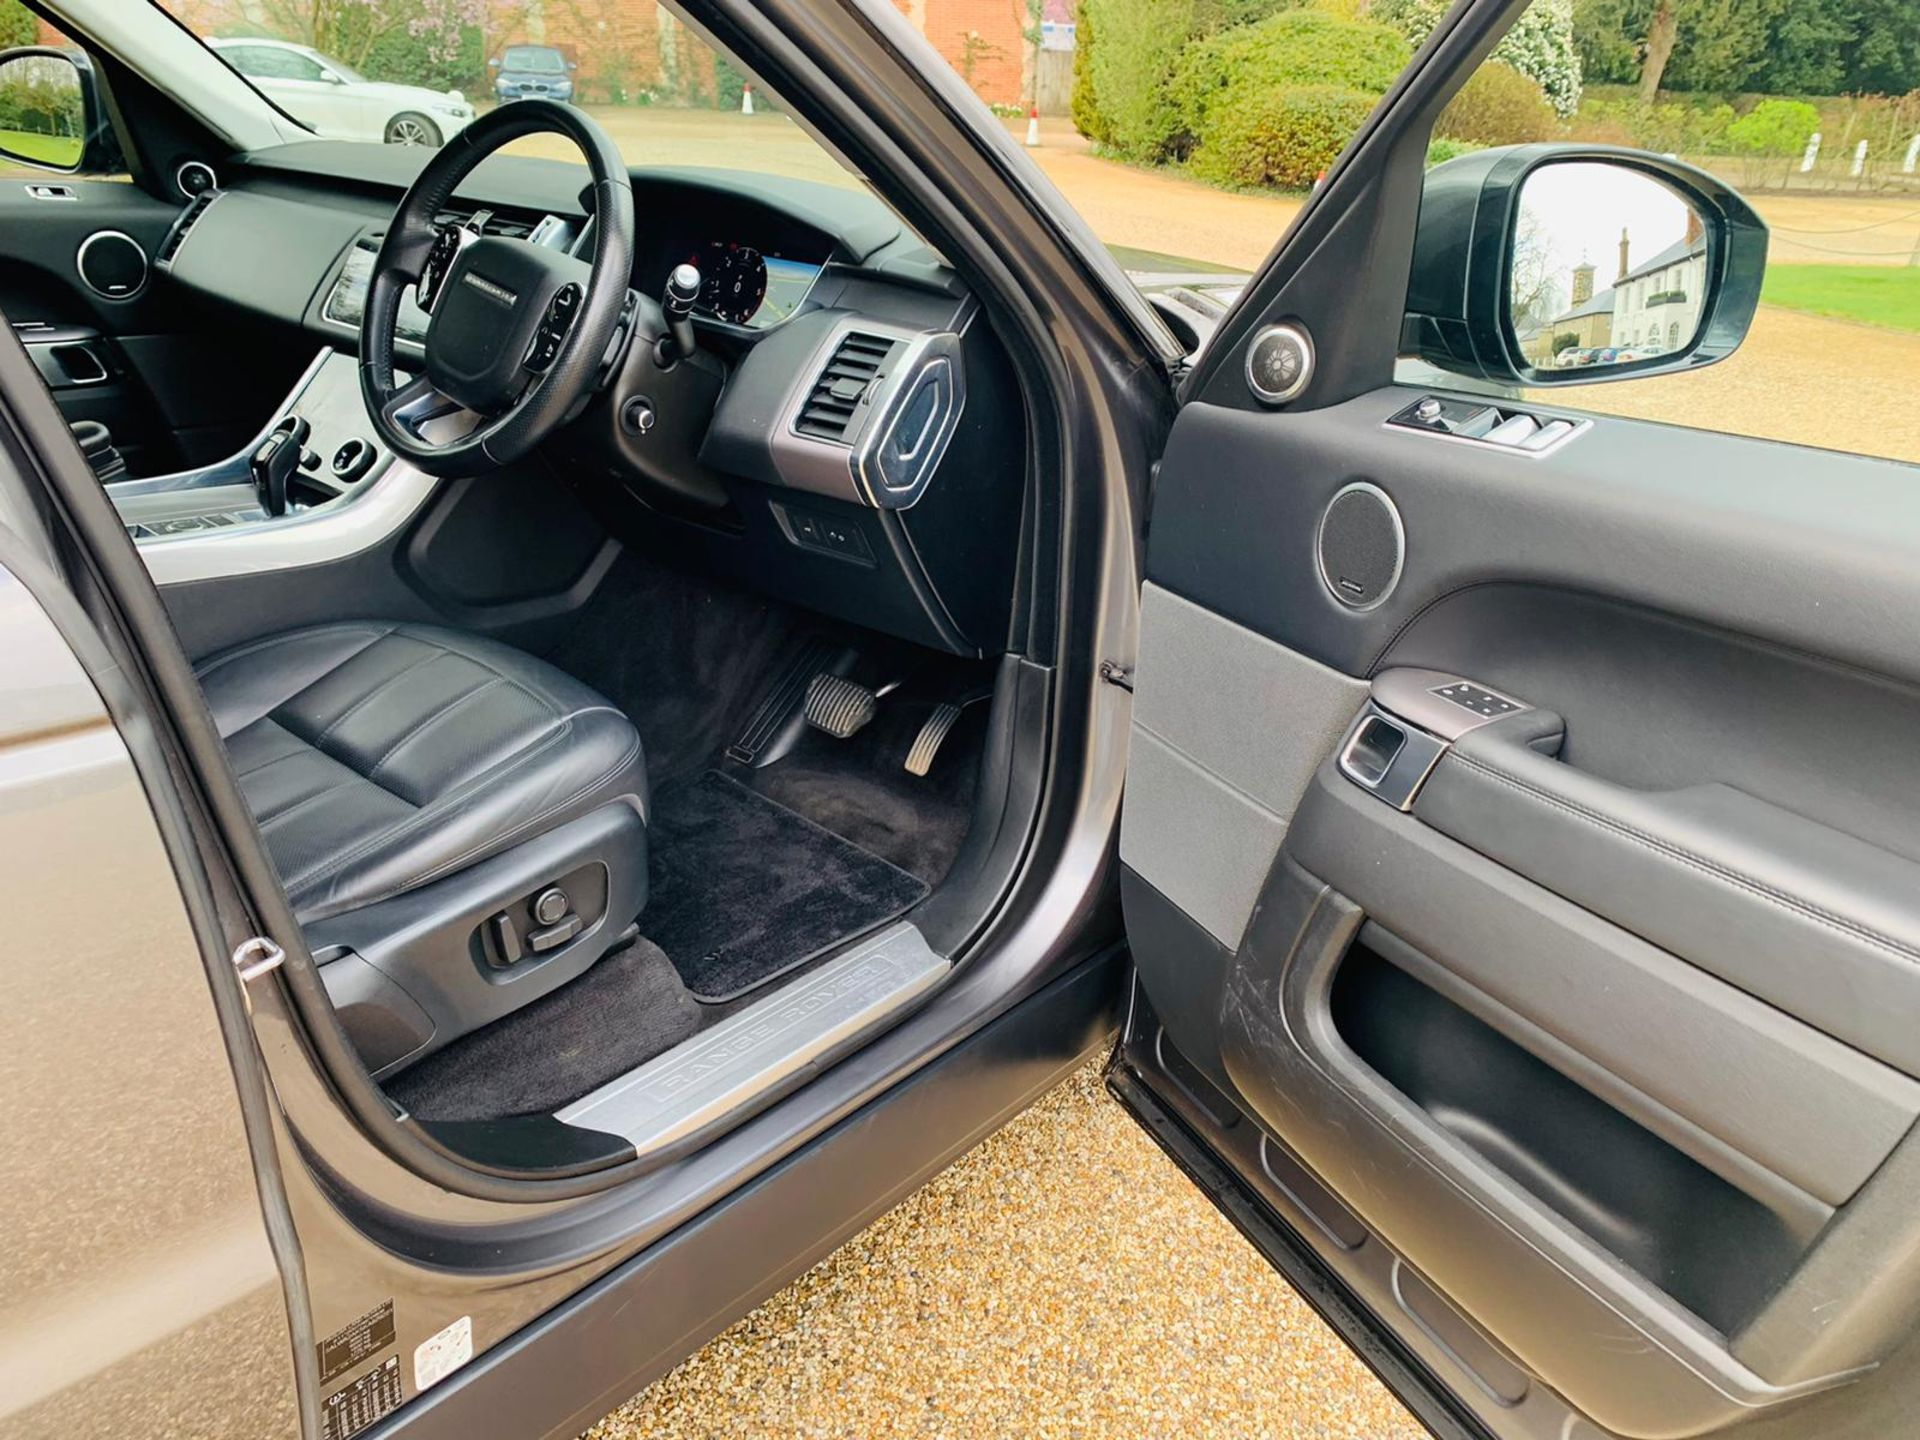 (RESERVE MET) Range Rover Sport 3.0 SDV6 HSE Auto - 2019 - 1 Keeper From New - Virtual Cockpit - - Image 14 of 42